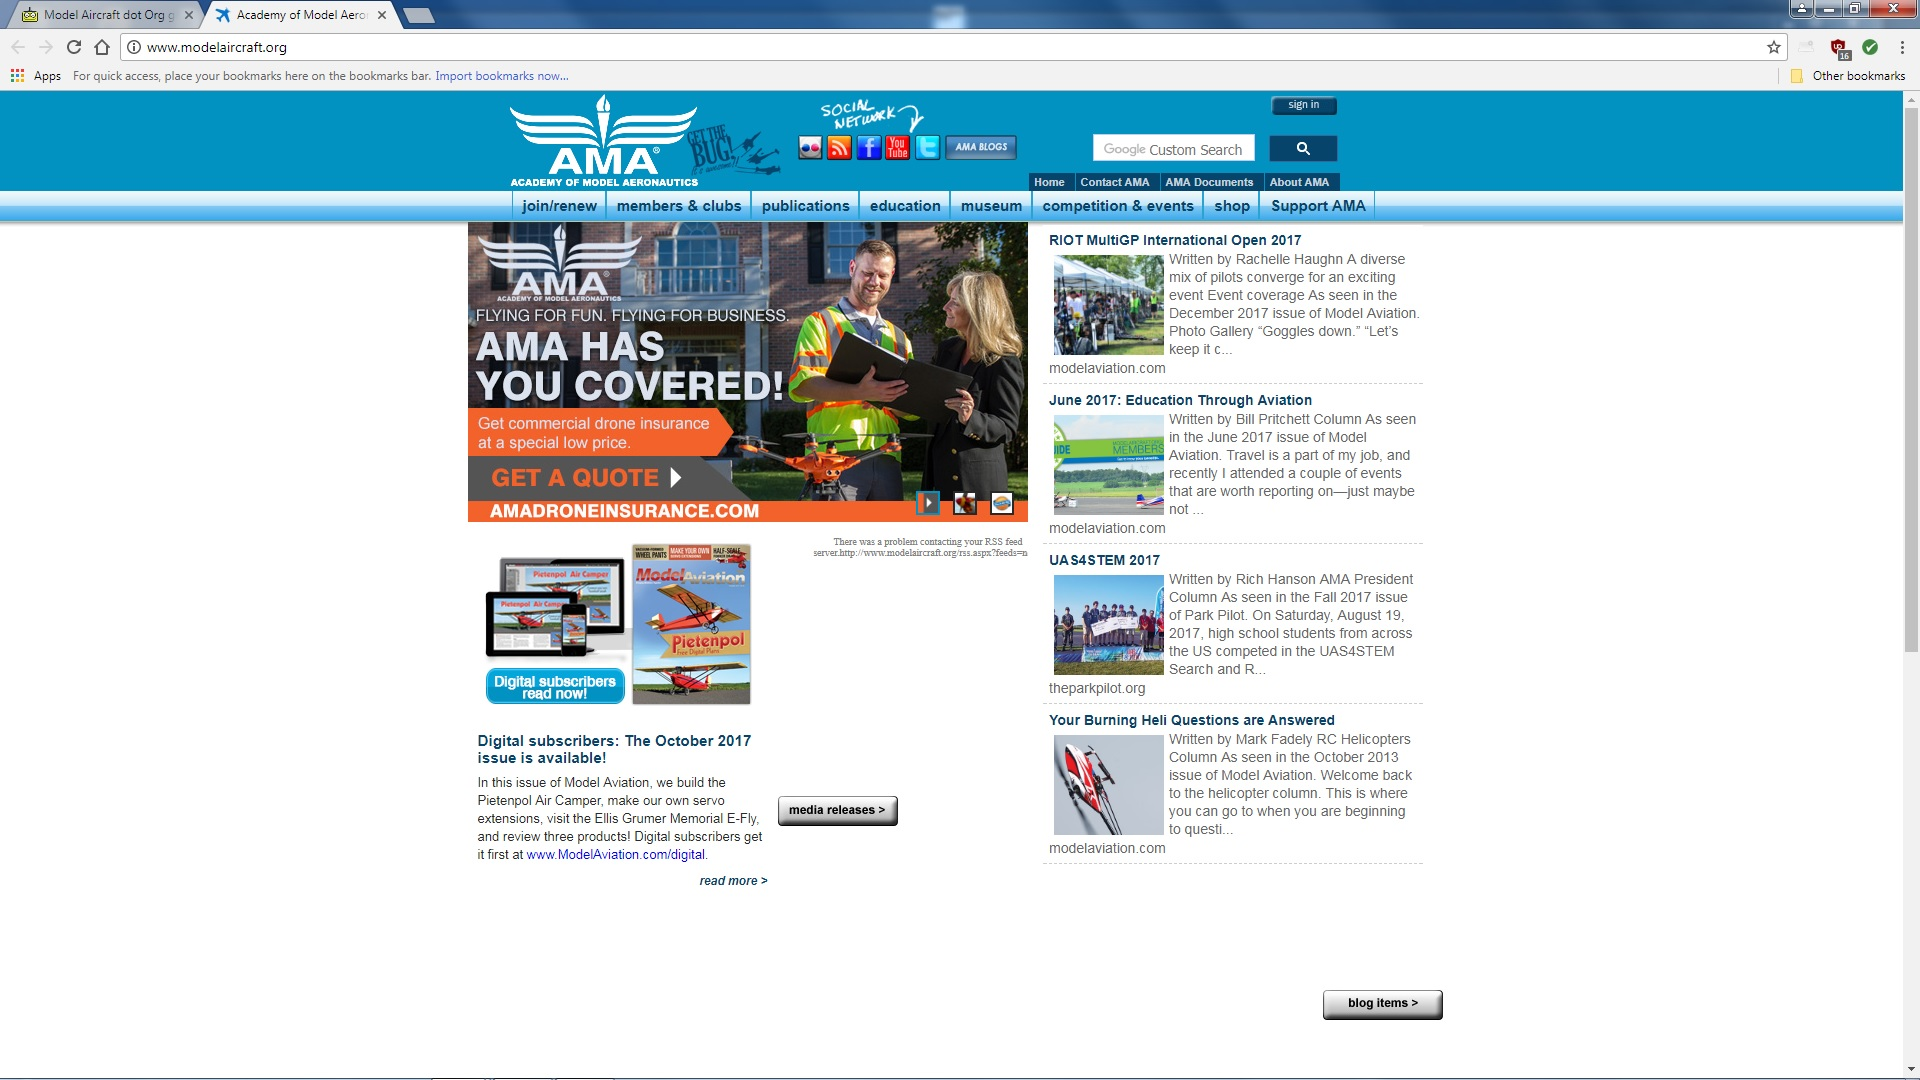 Model Aircraft dot Org goes to GoDaddy page - RC Groups